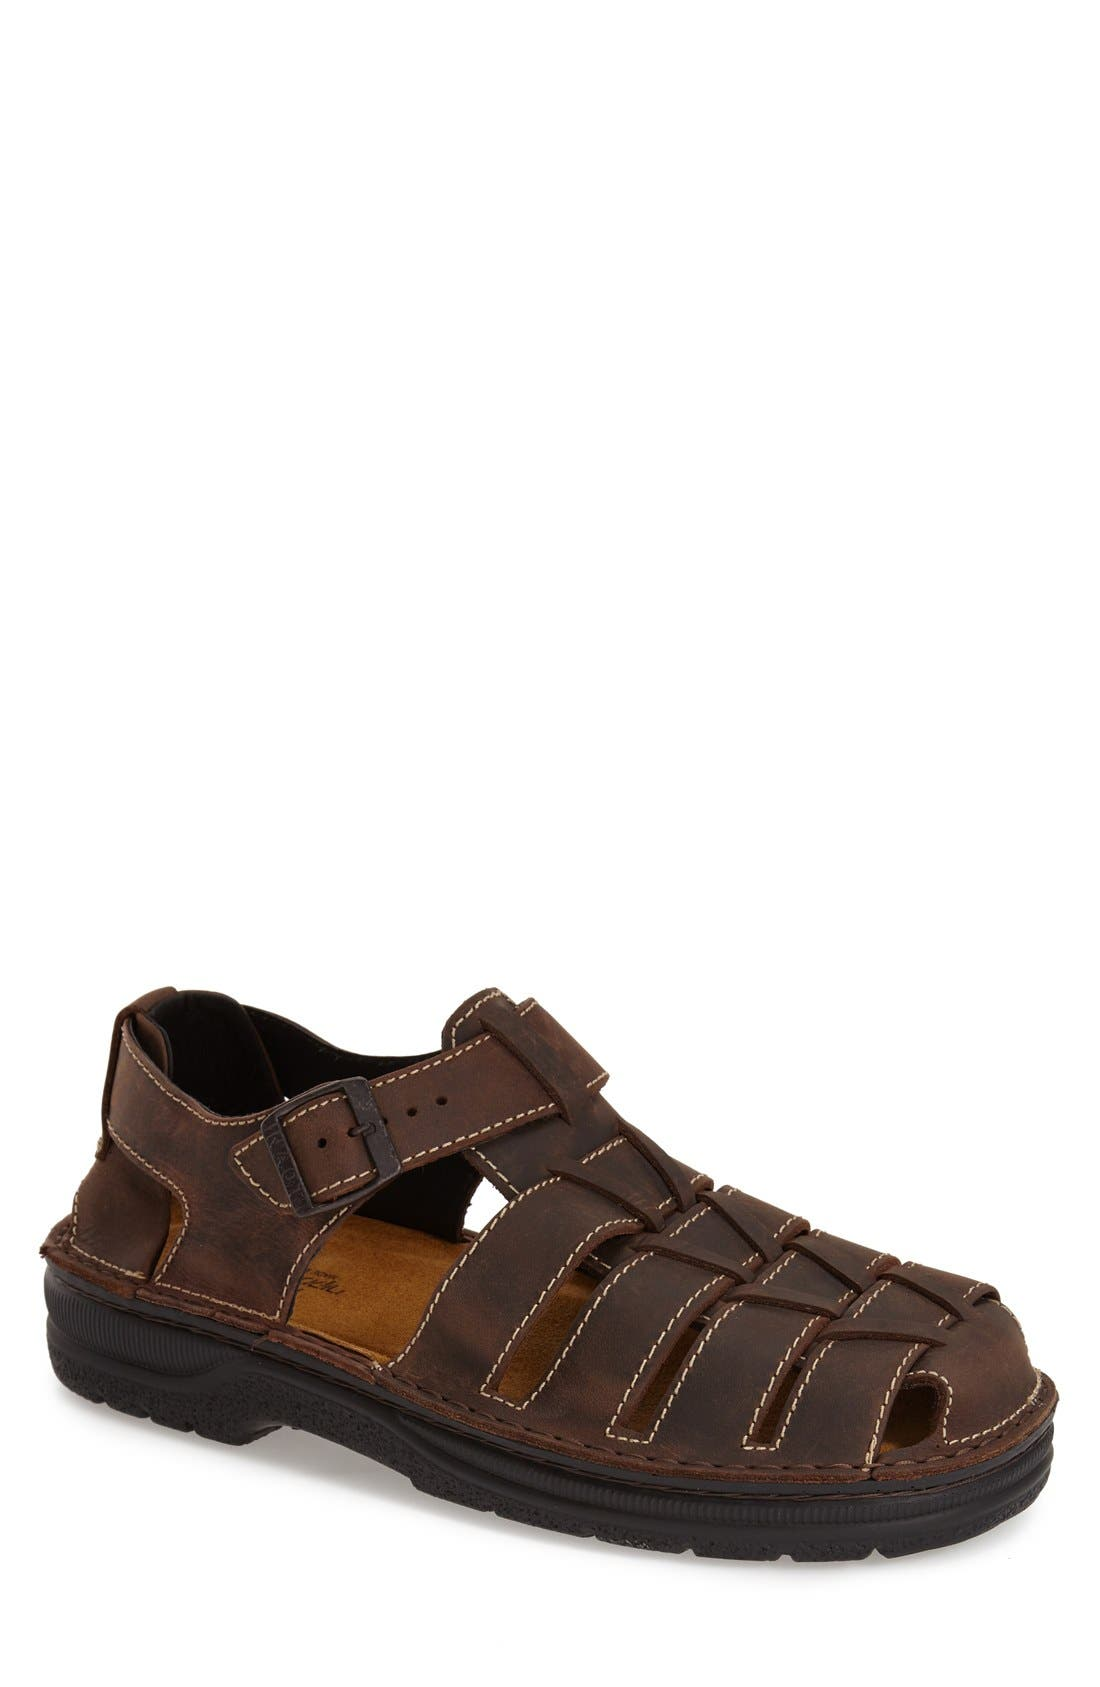 Julius Fisherman Sandal,                         Main,                         color,